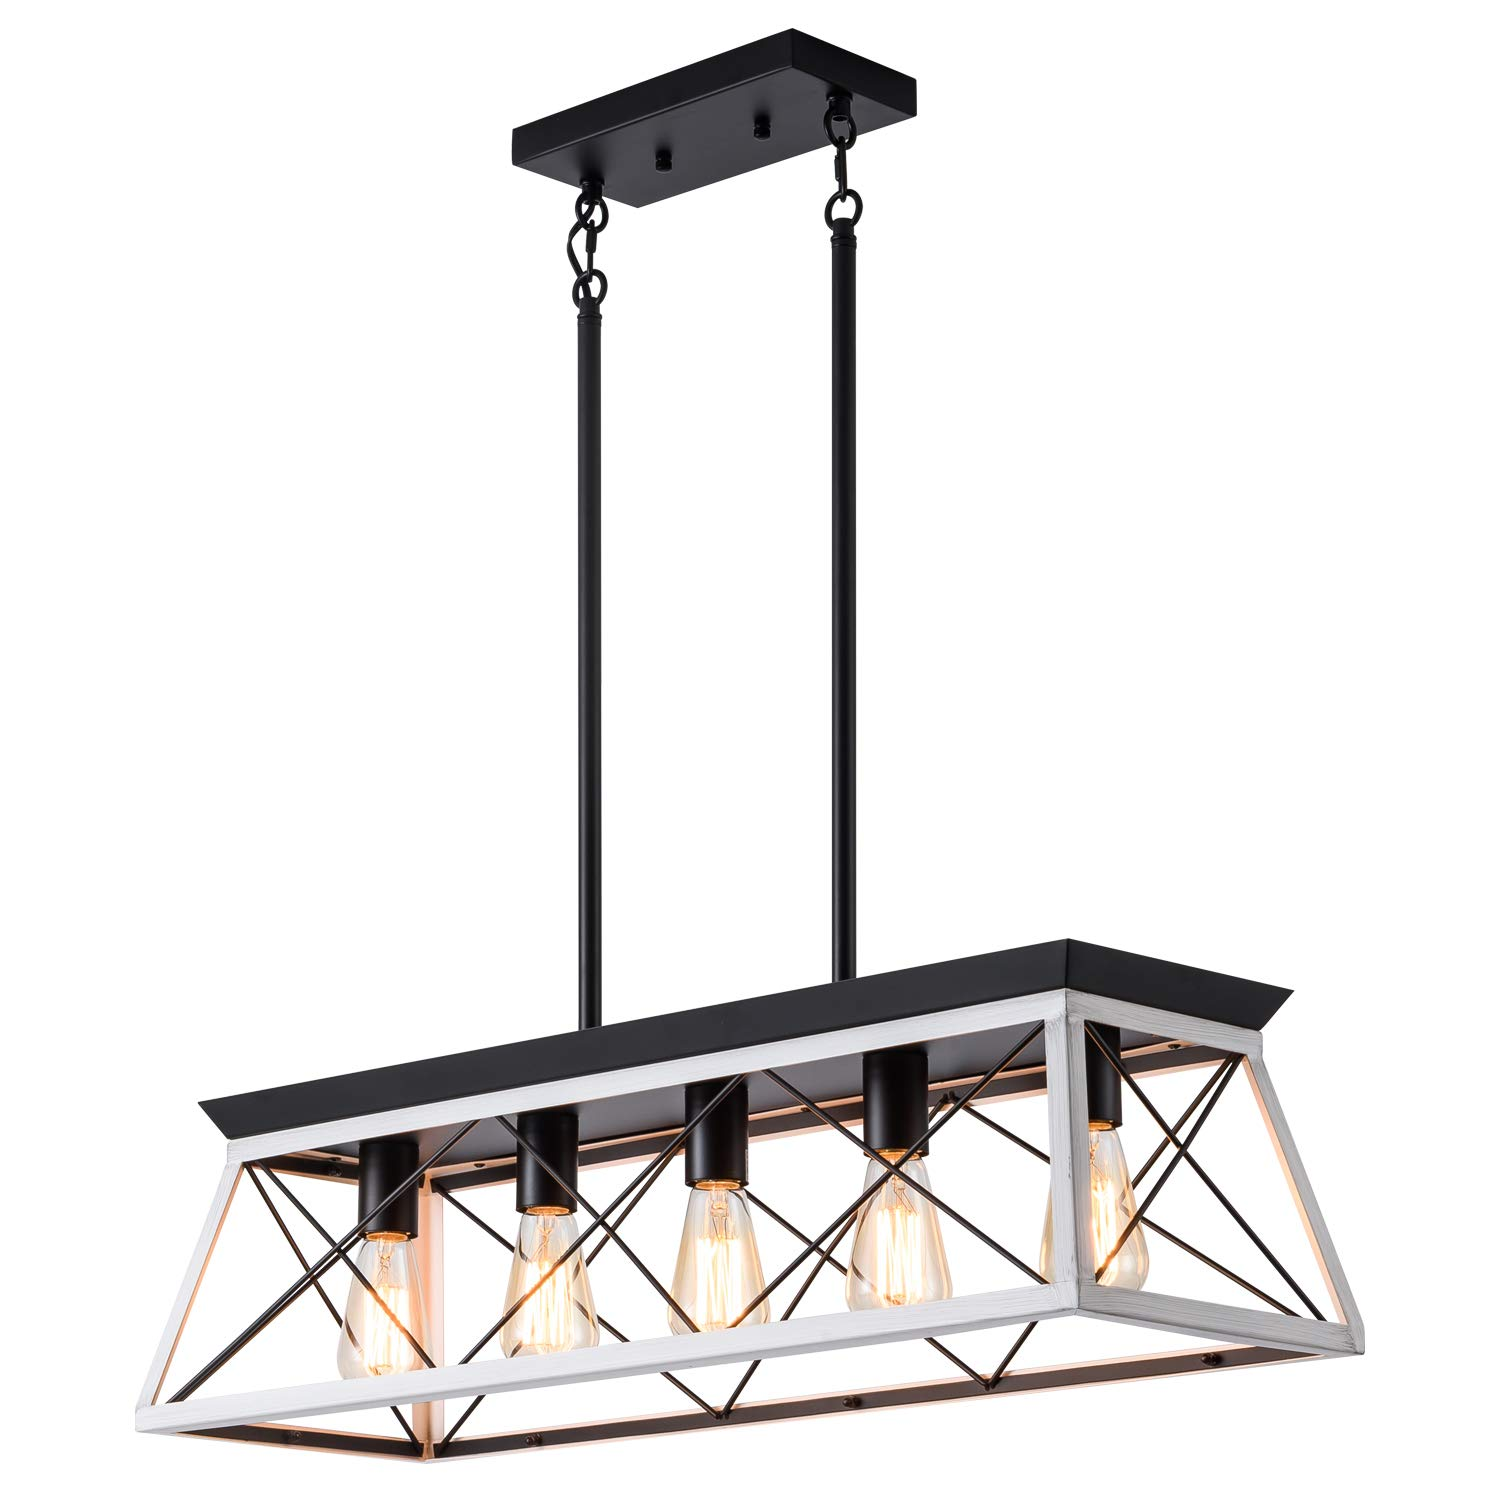 XIPUDA 5-Light Linear Pendant Light Fixture Kitchen Island Lighting Industrial Metal Farmhouse Chandeliers for Dinning Room Living Room